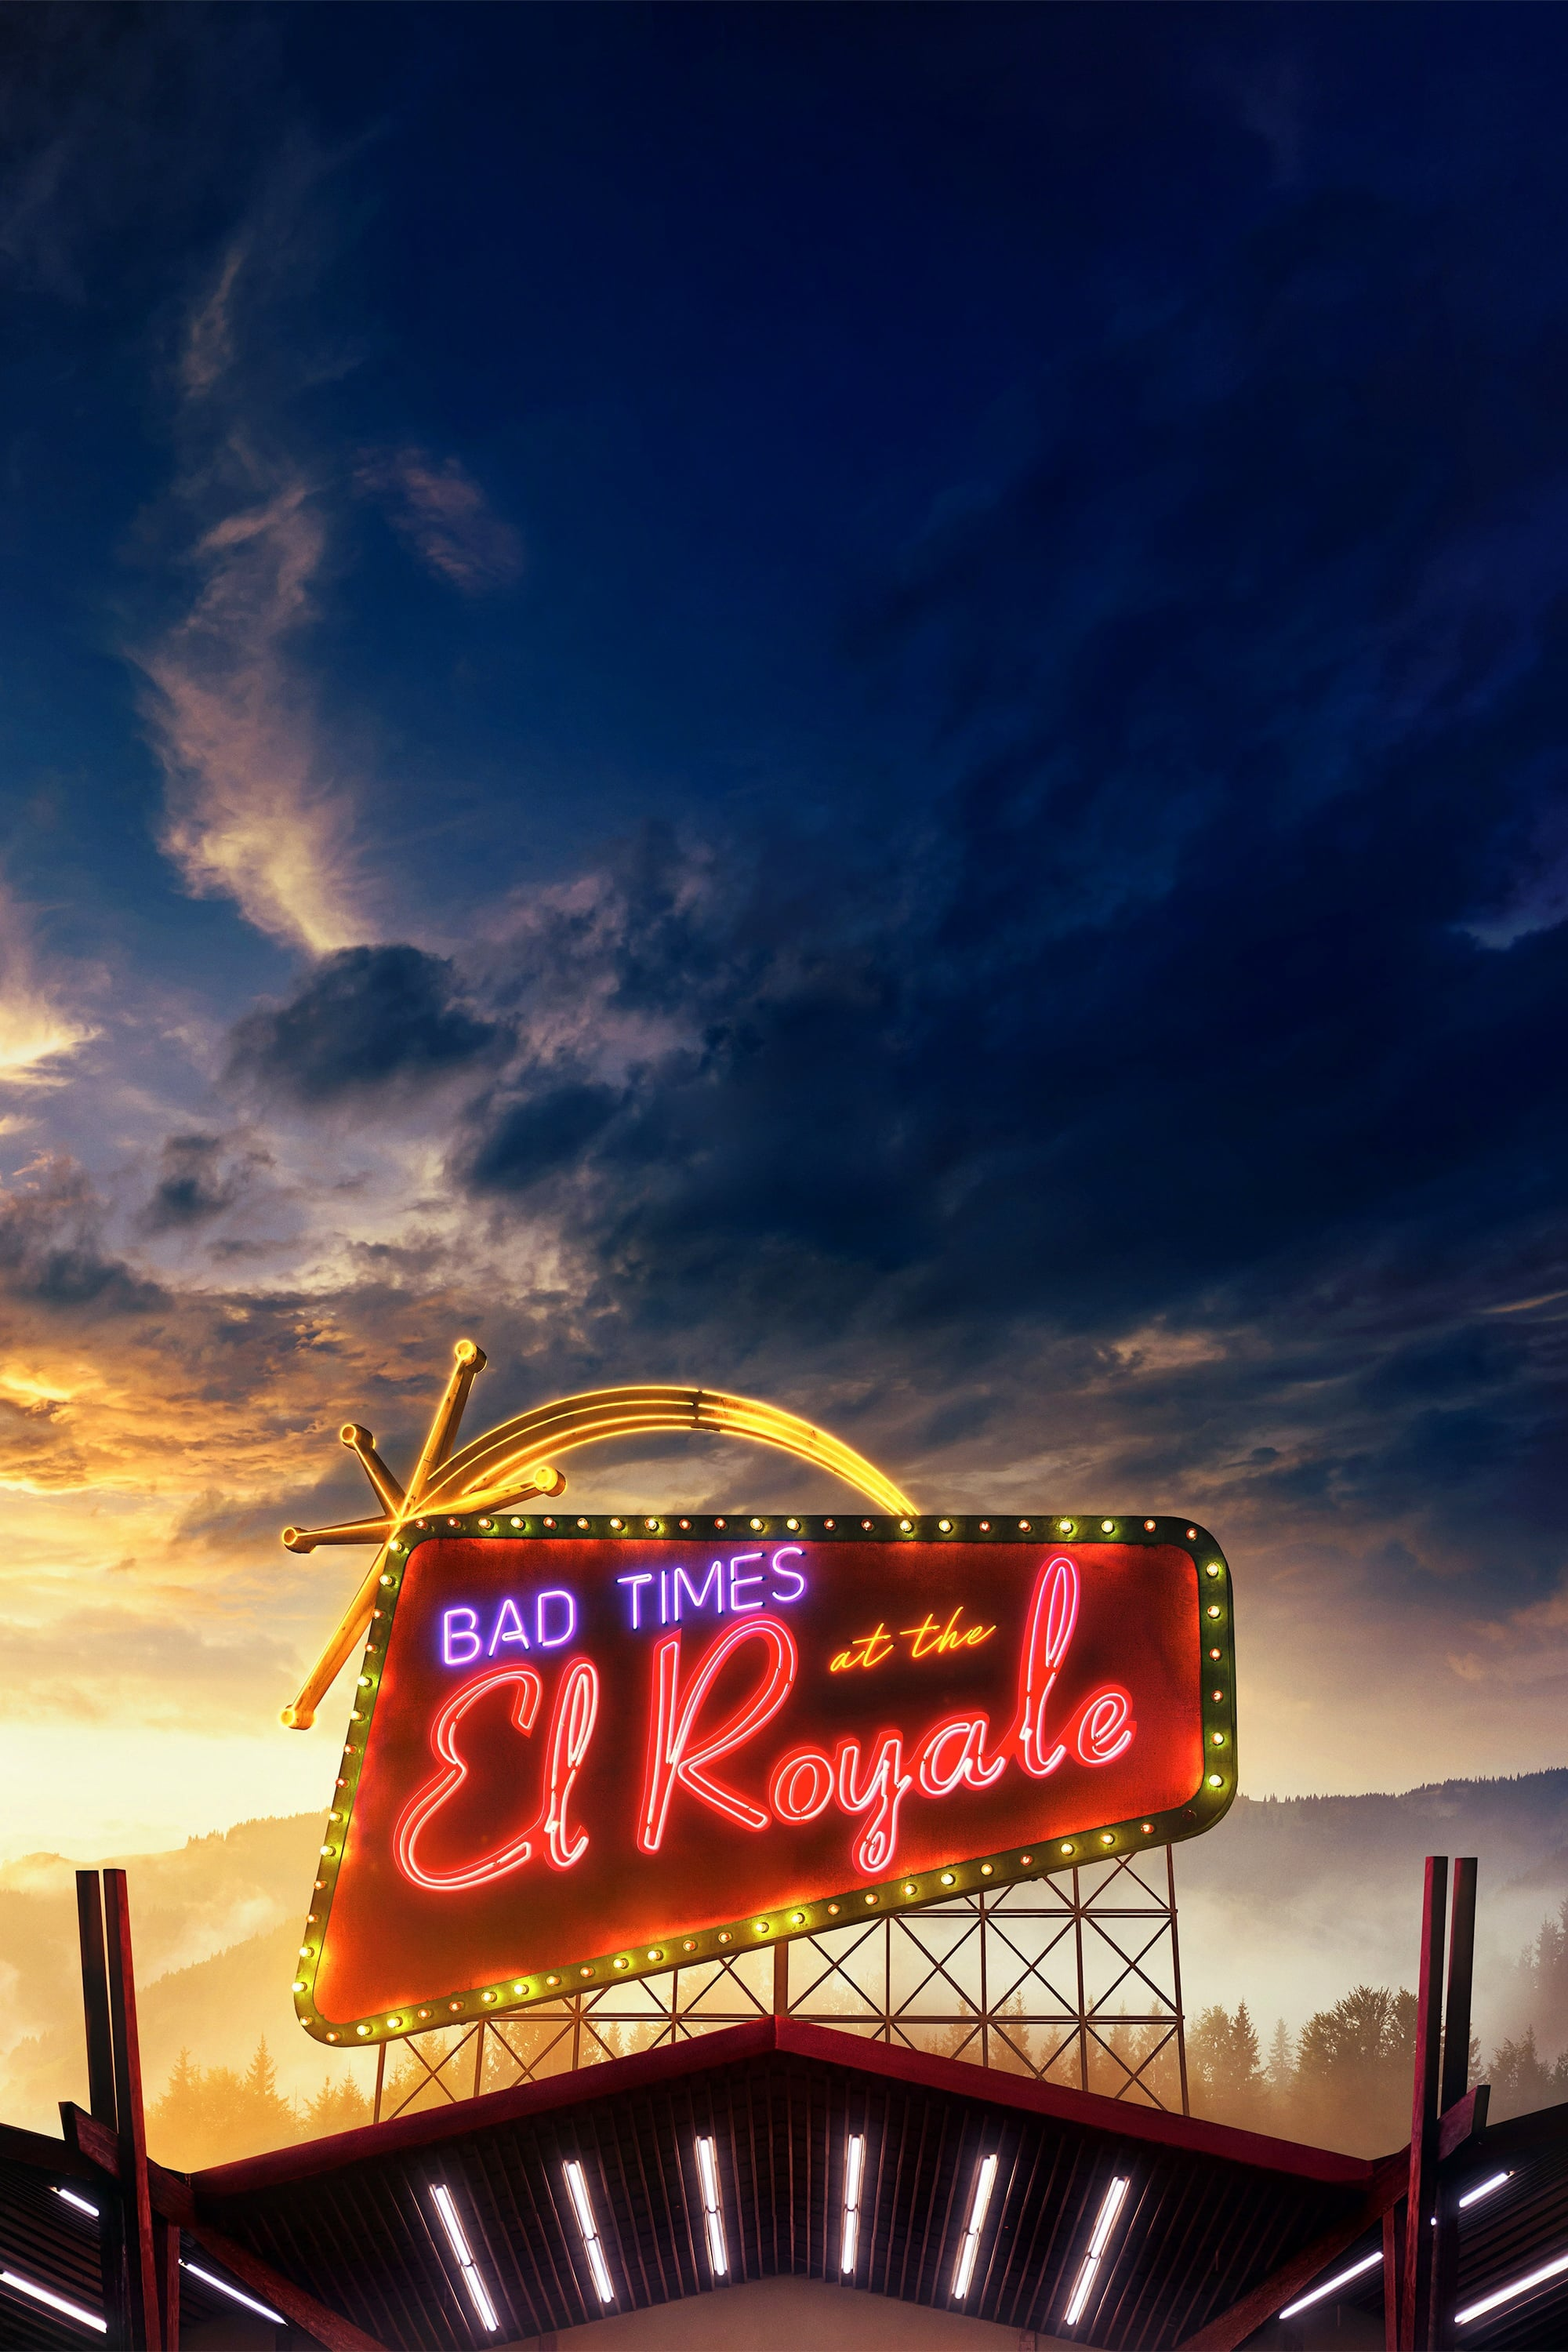 Bad Times at the El Royale (2018)